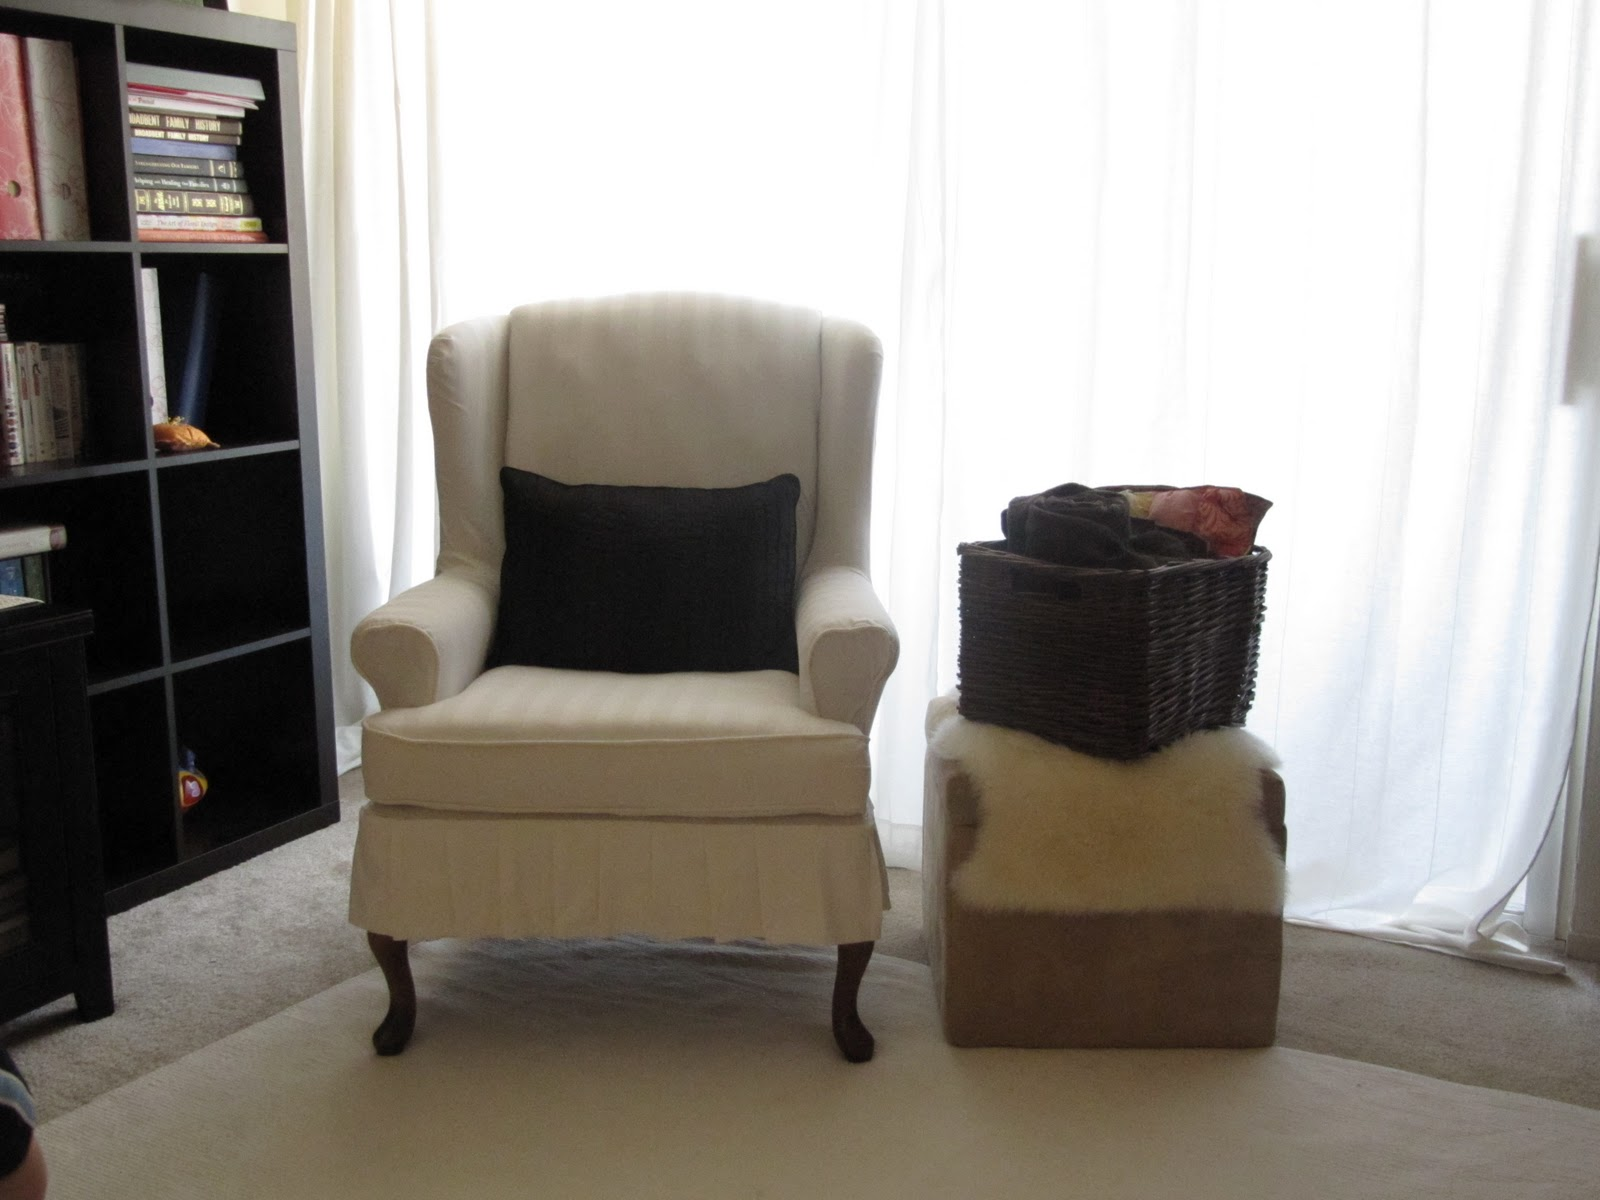 chair damask fit slipcover matelasse hayneedle sure kick product cfm cushion piece master pleat t chairs